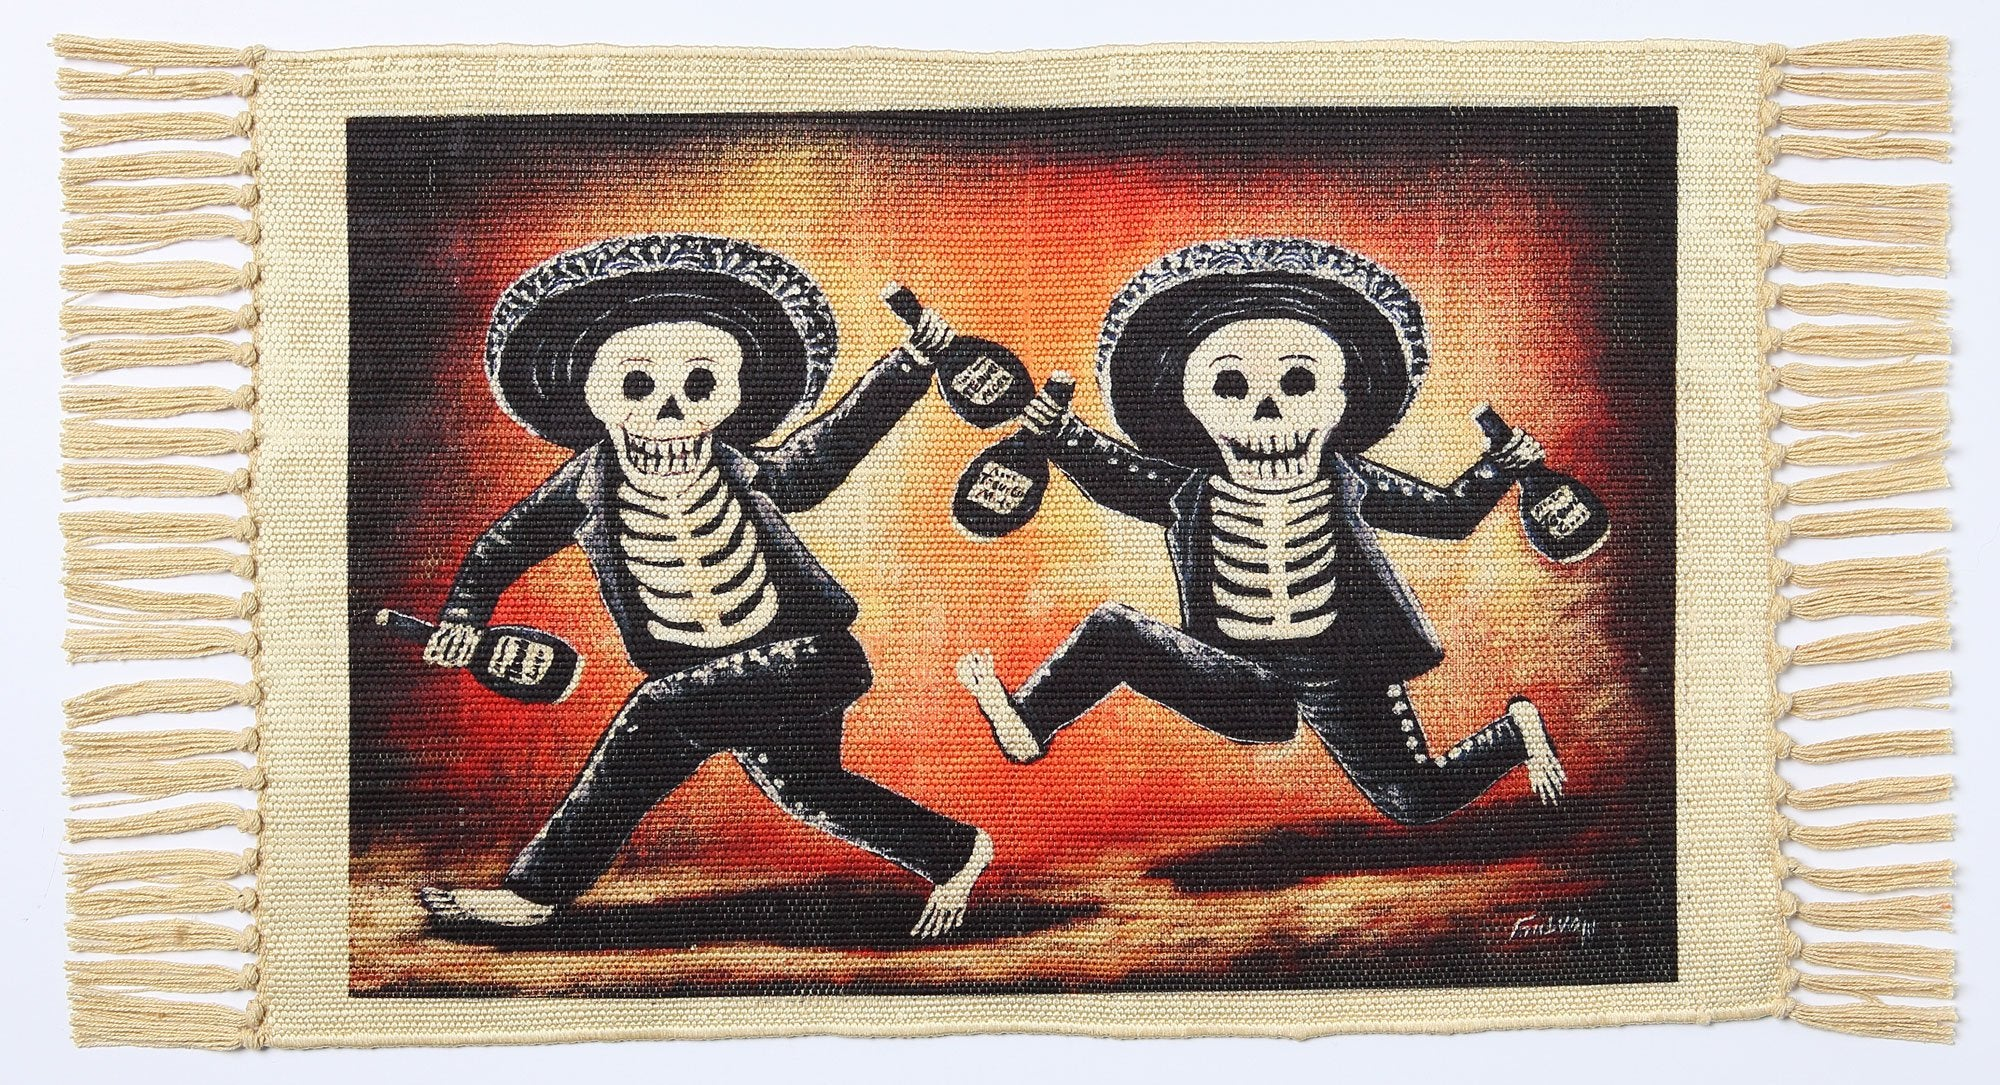 Day of the Dead Placemat - Mariachis on the Run